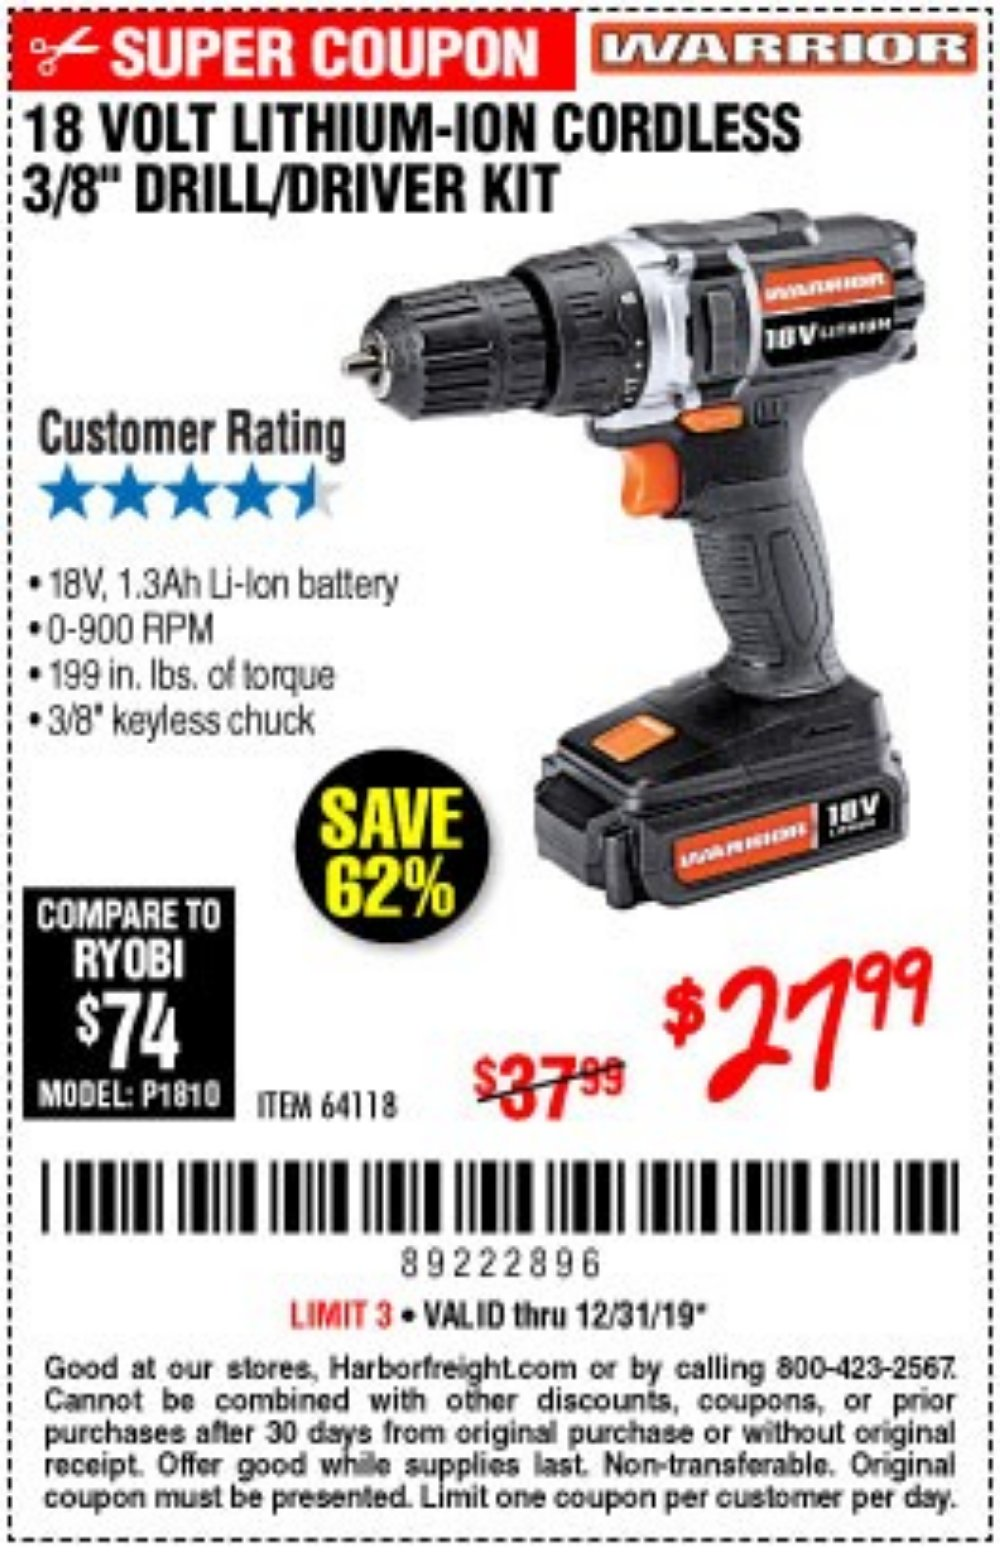 Harbor Freight Coupon, HF Coupons - 18 Volt Lithium Cordless 3/8